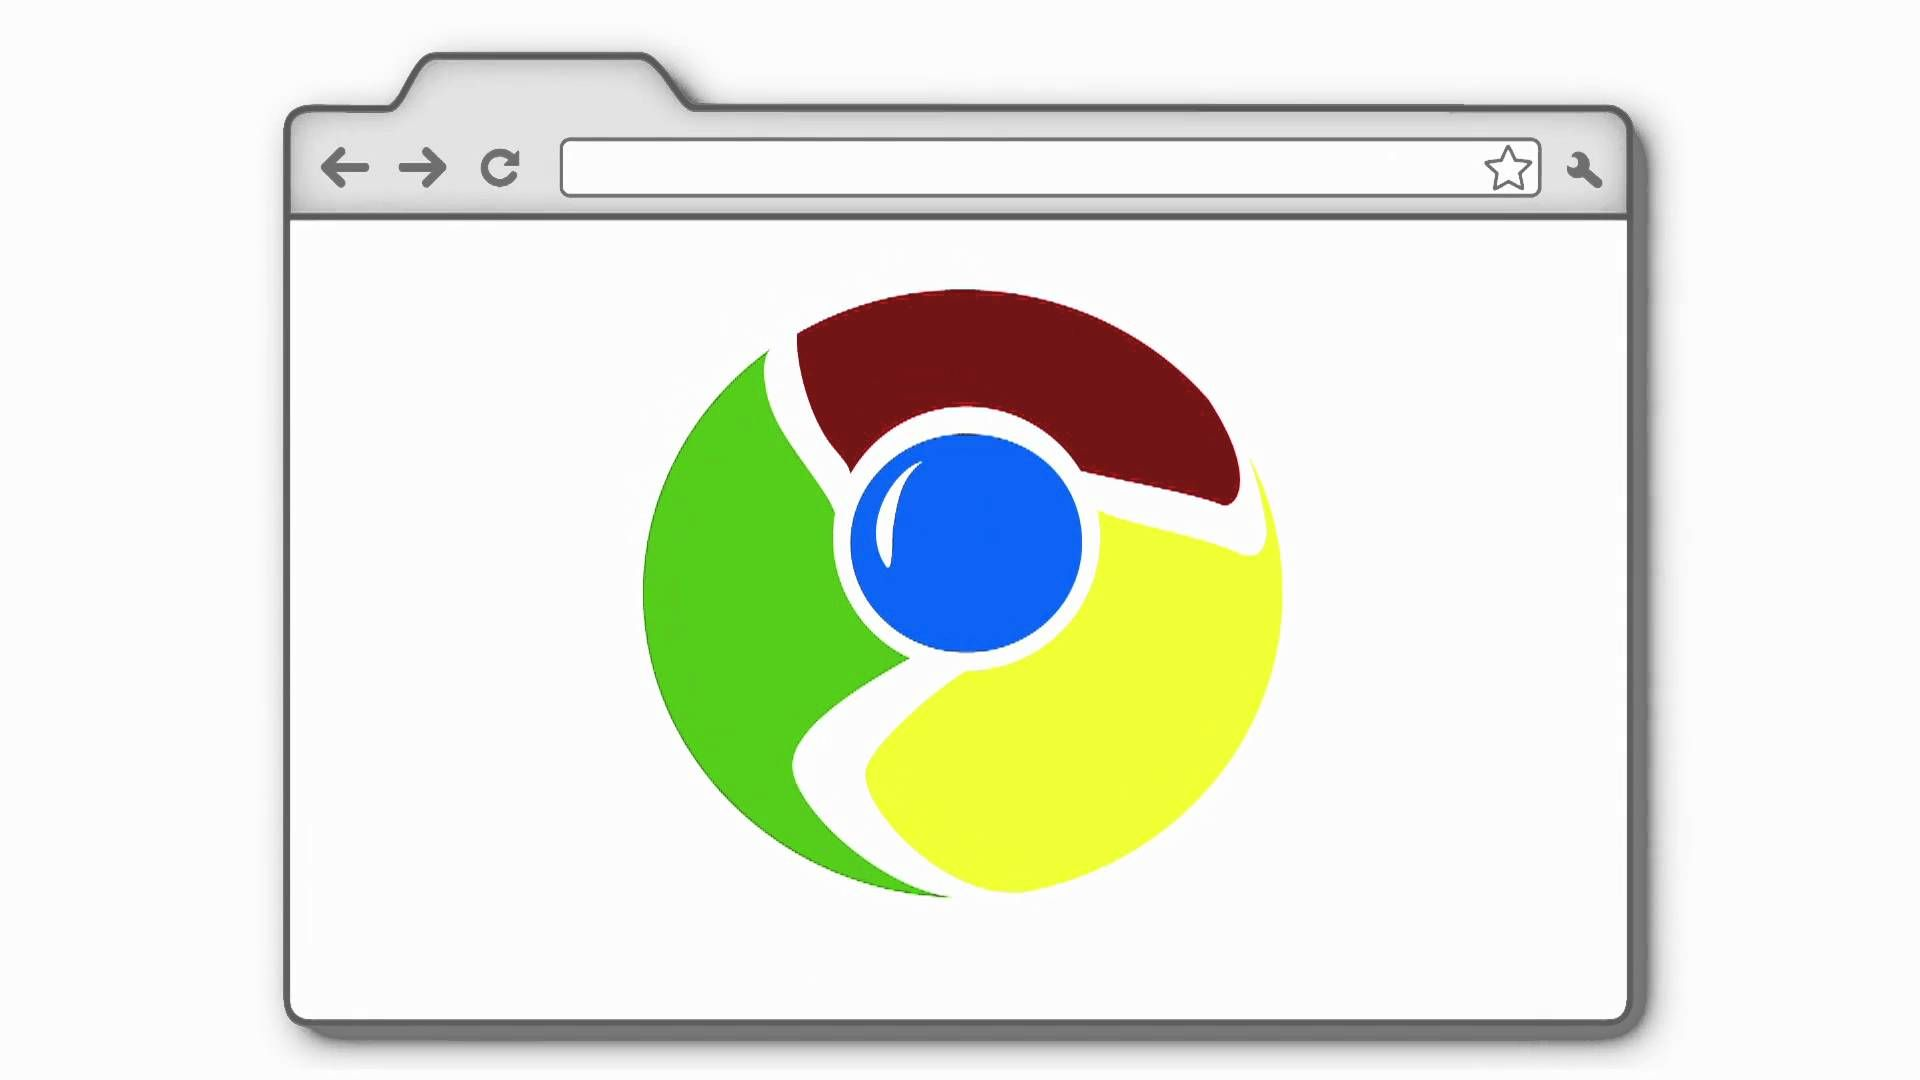 Chrome Web Store What's a web app? (With images